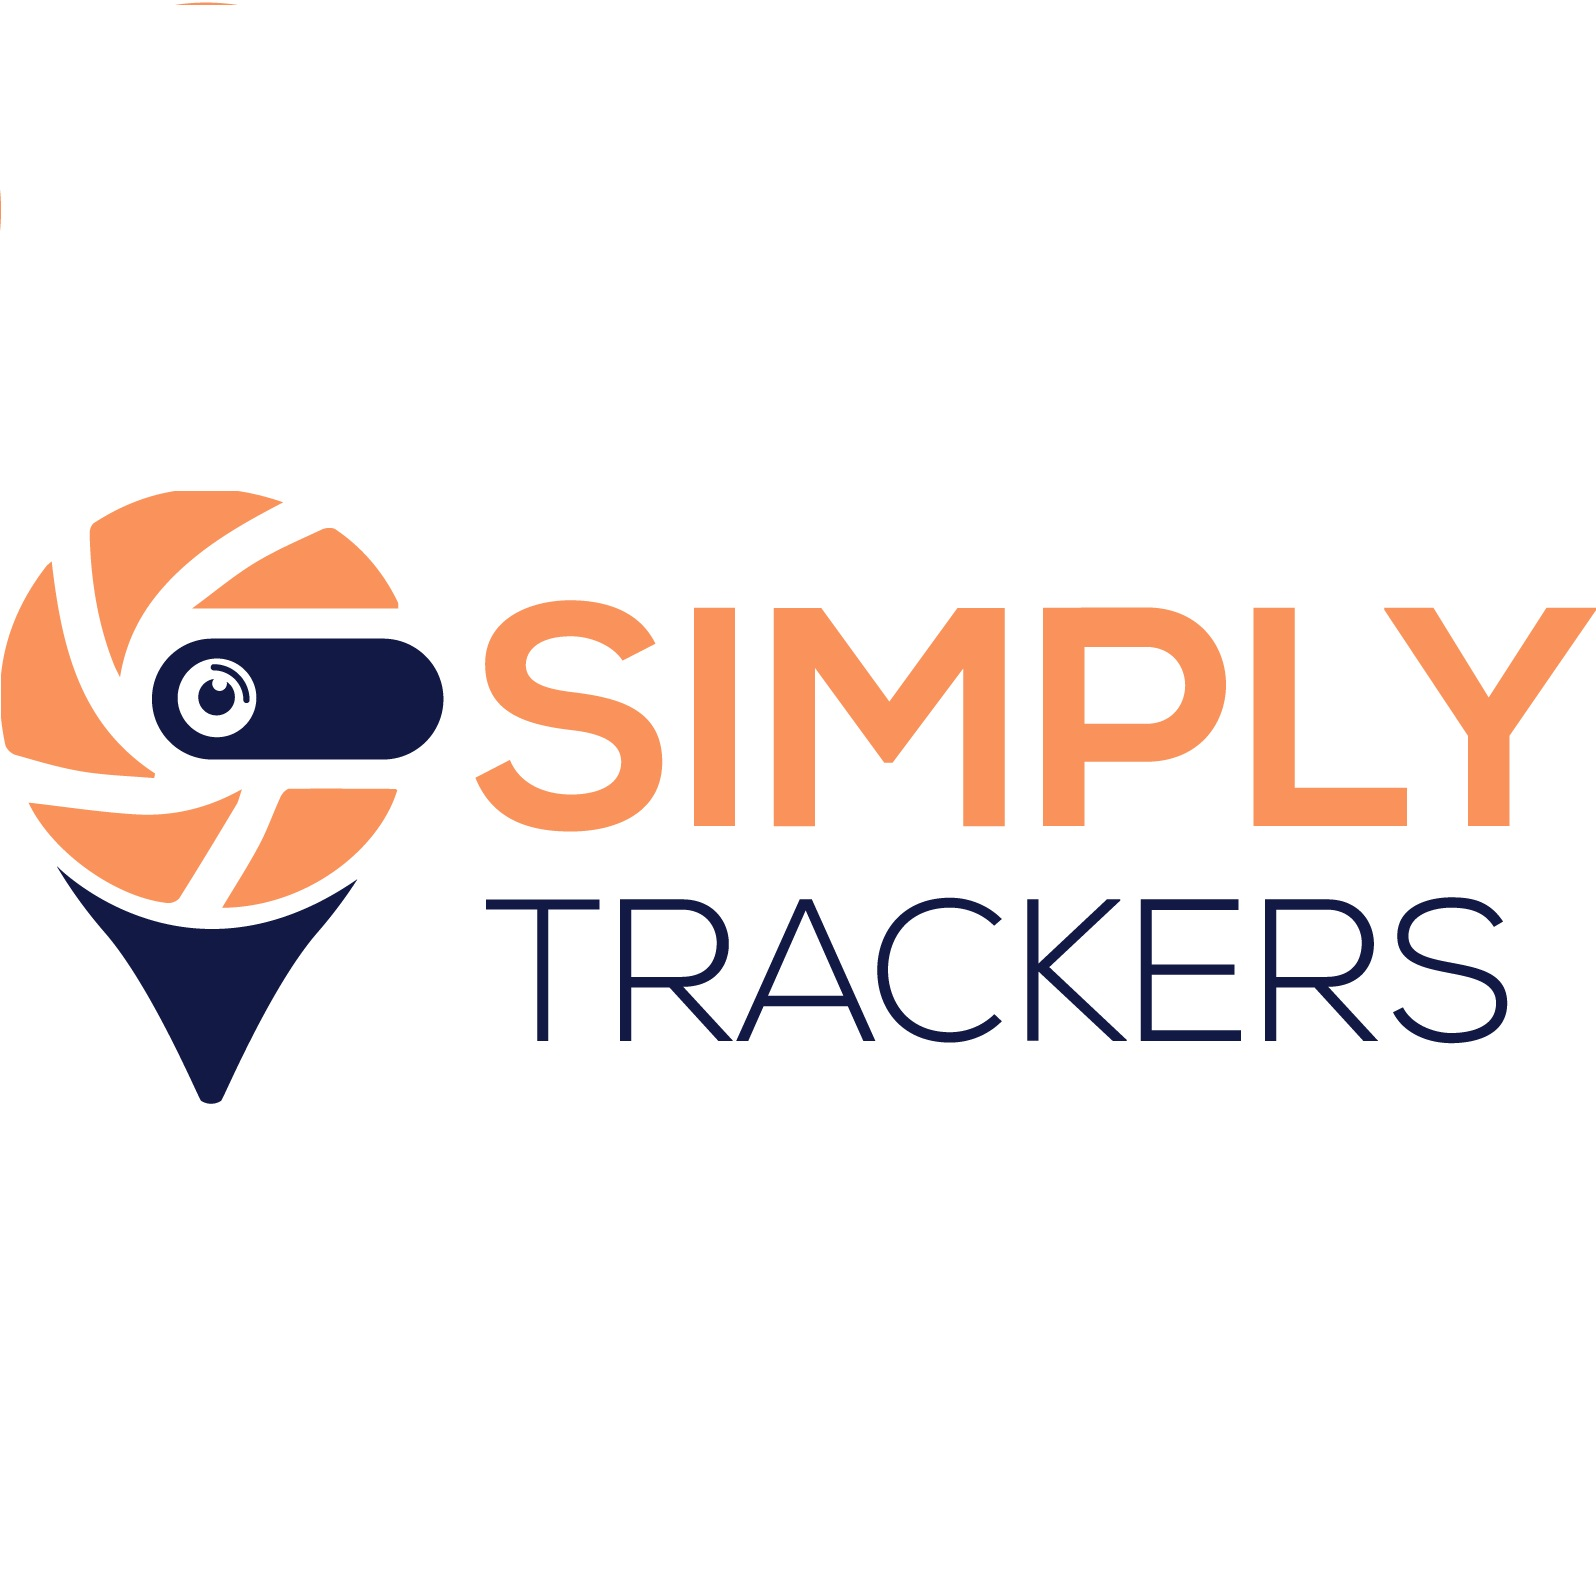 Simply Trackers